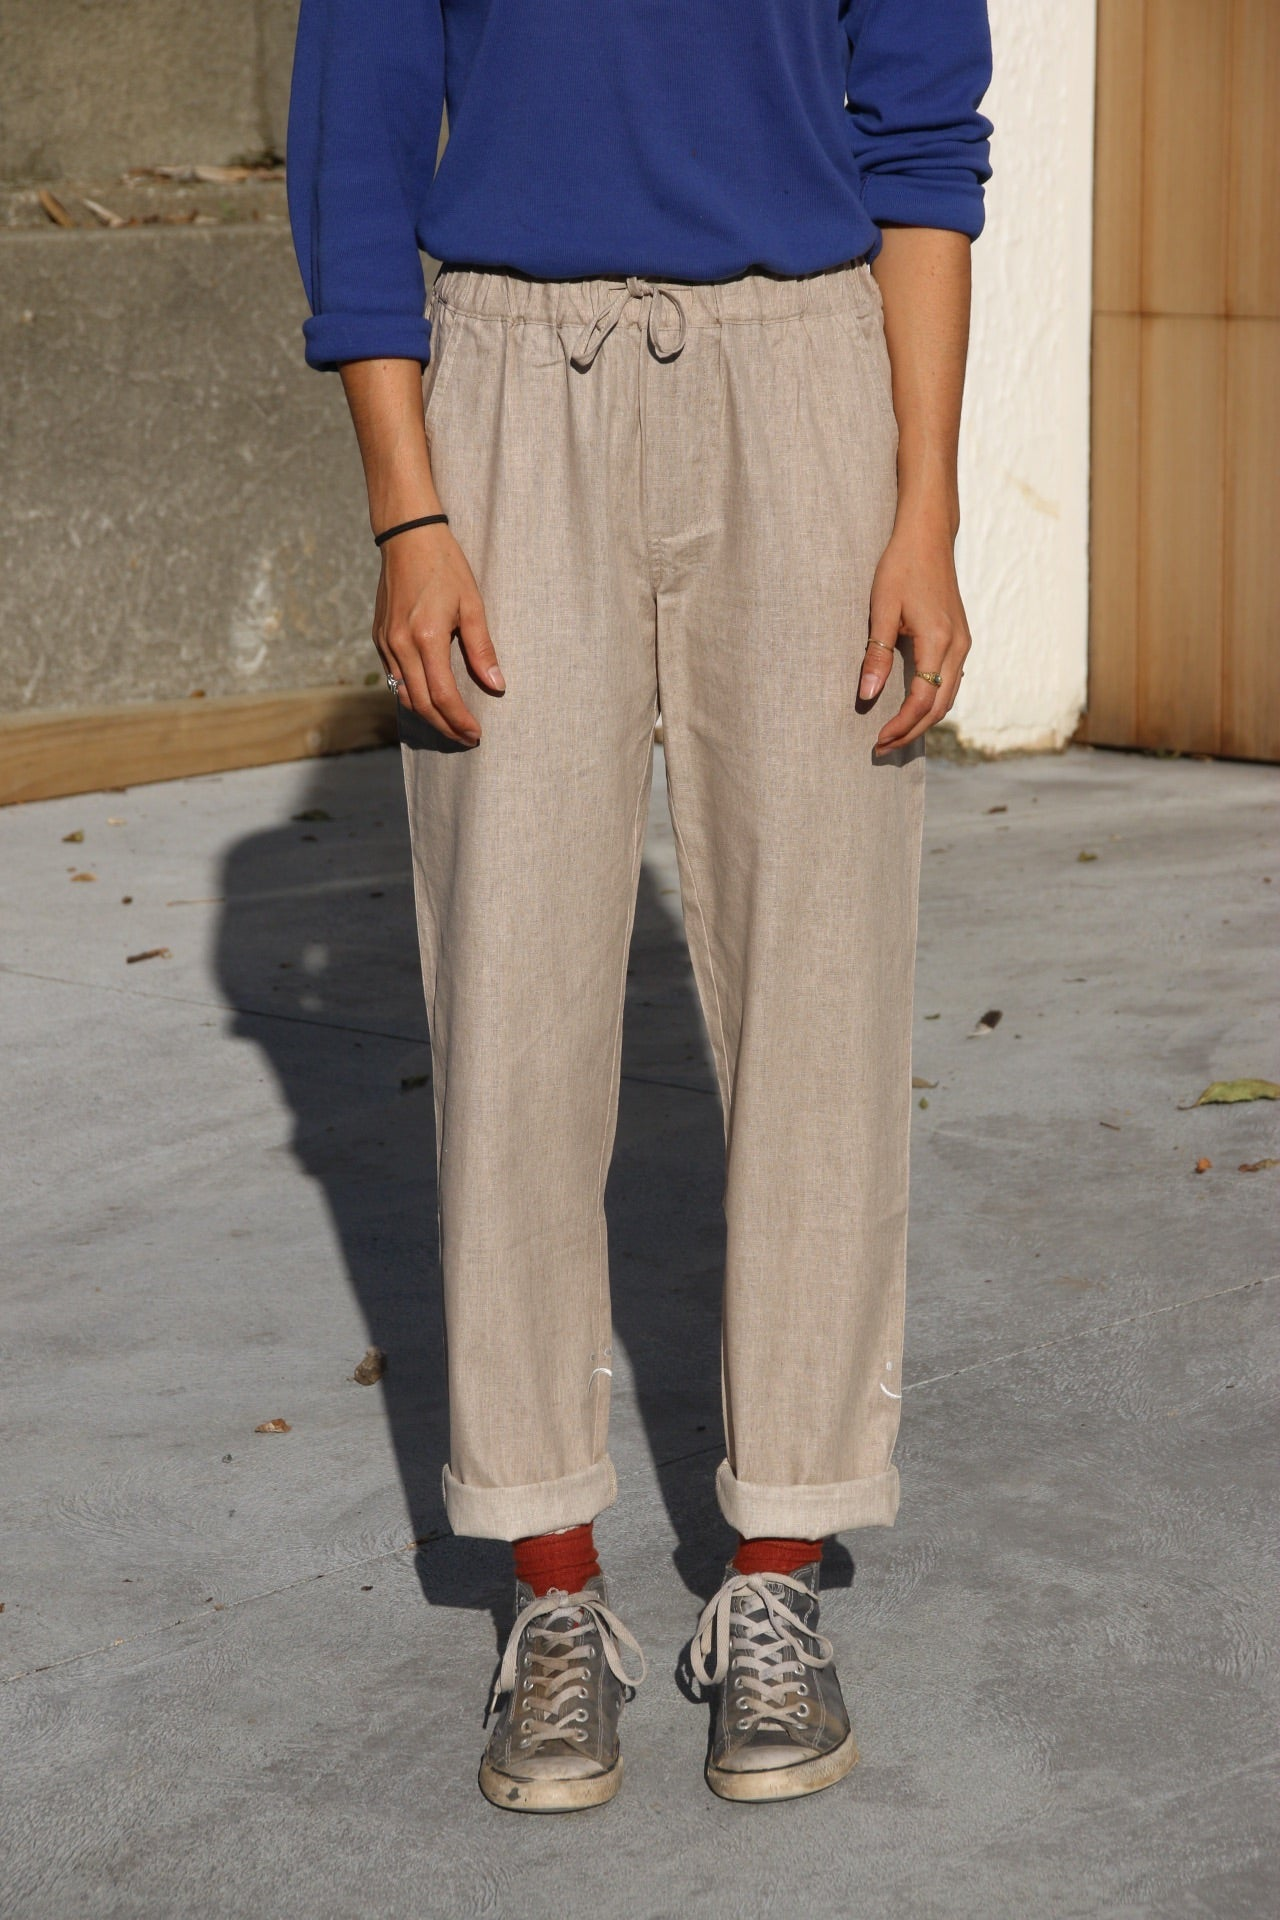 Happily Sad Linen Pants - Beige